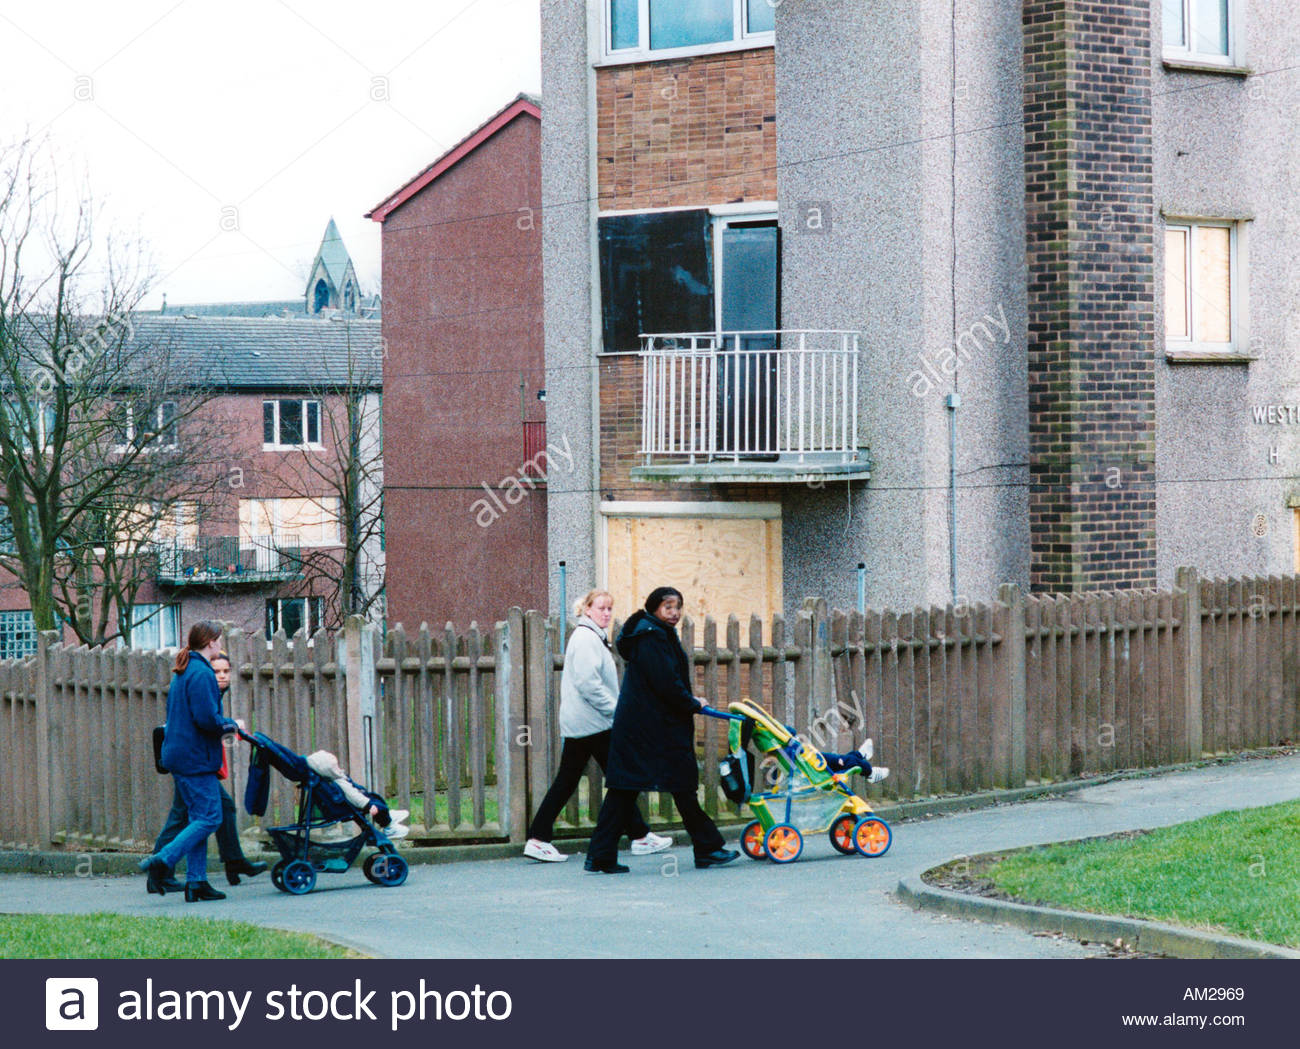 bradford council sofa removal teak outdoor sectional deprived child uk stock photos images alamy women walking their babies in buggys on housing estate yorkshire image